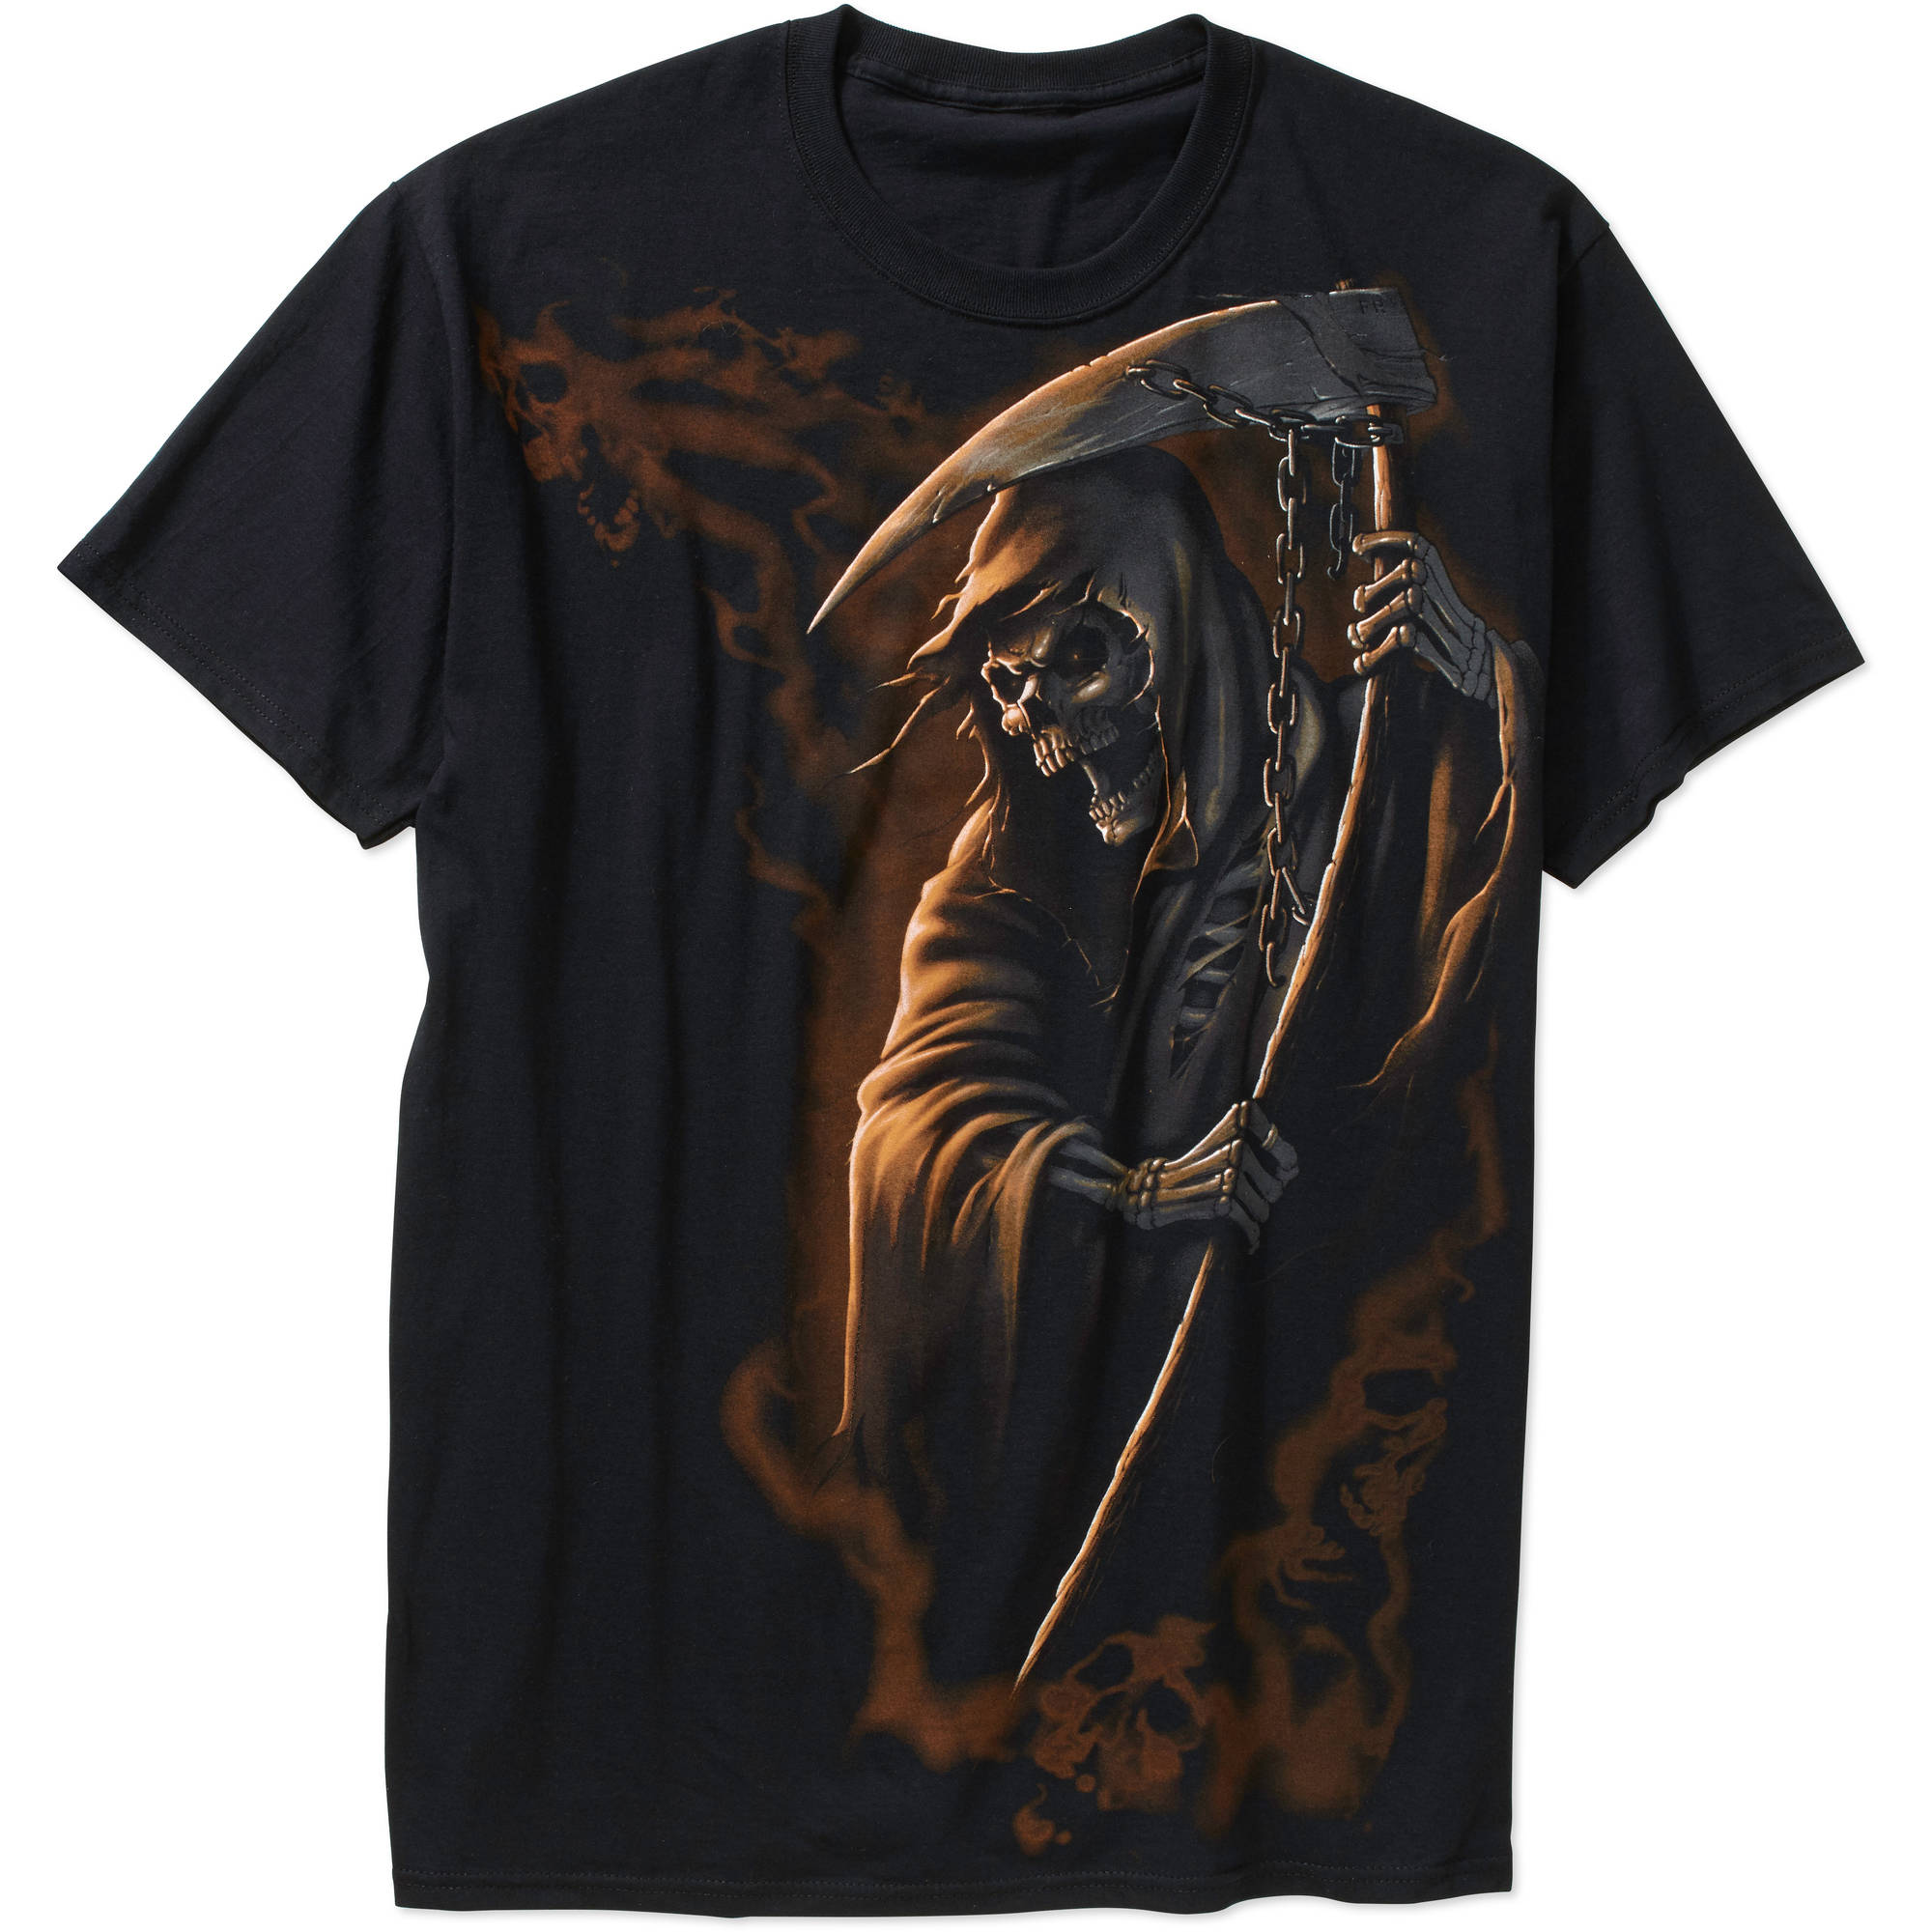 Reaper Smoke Men's Graphic Tee